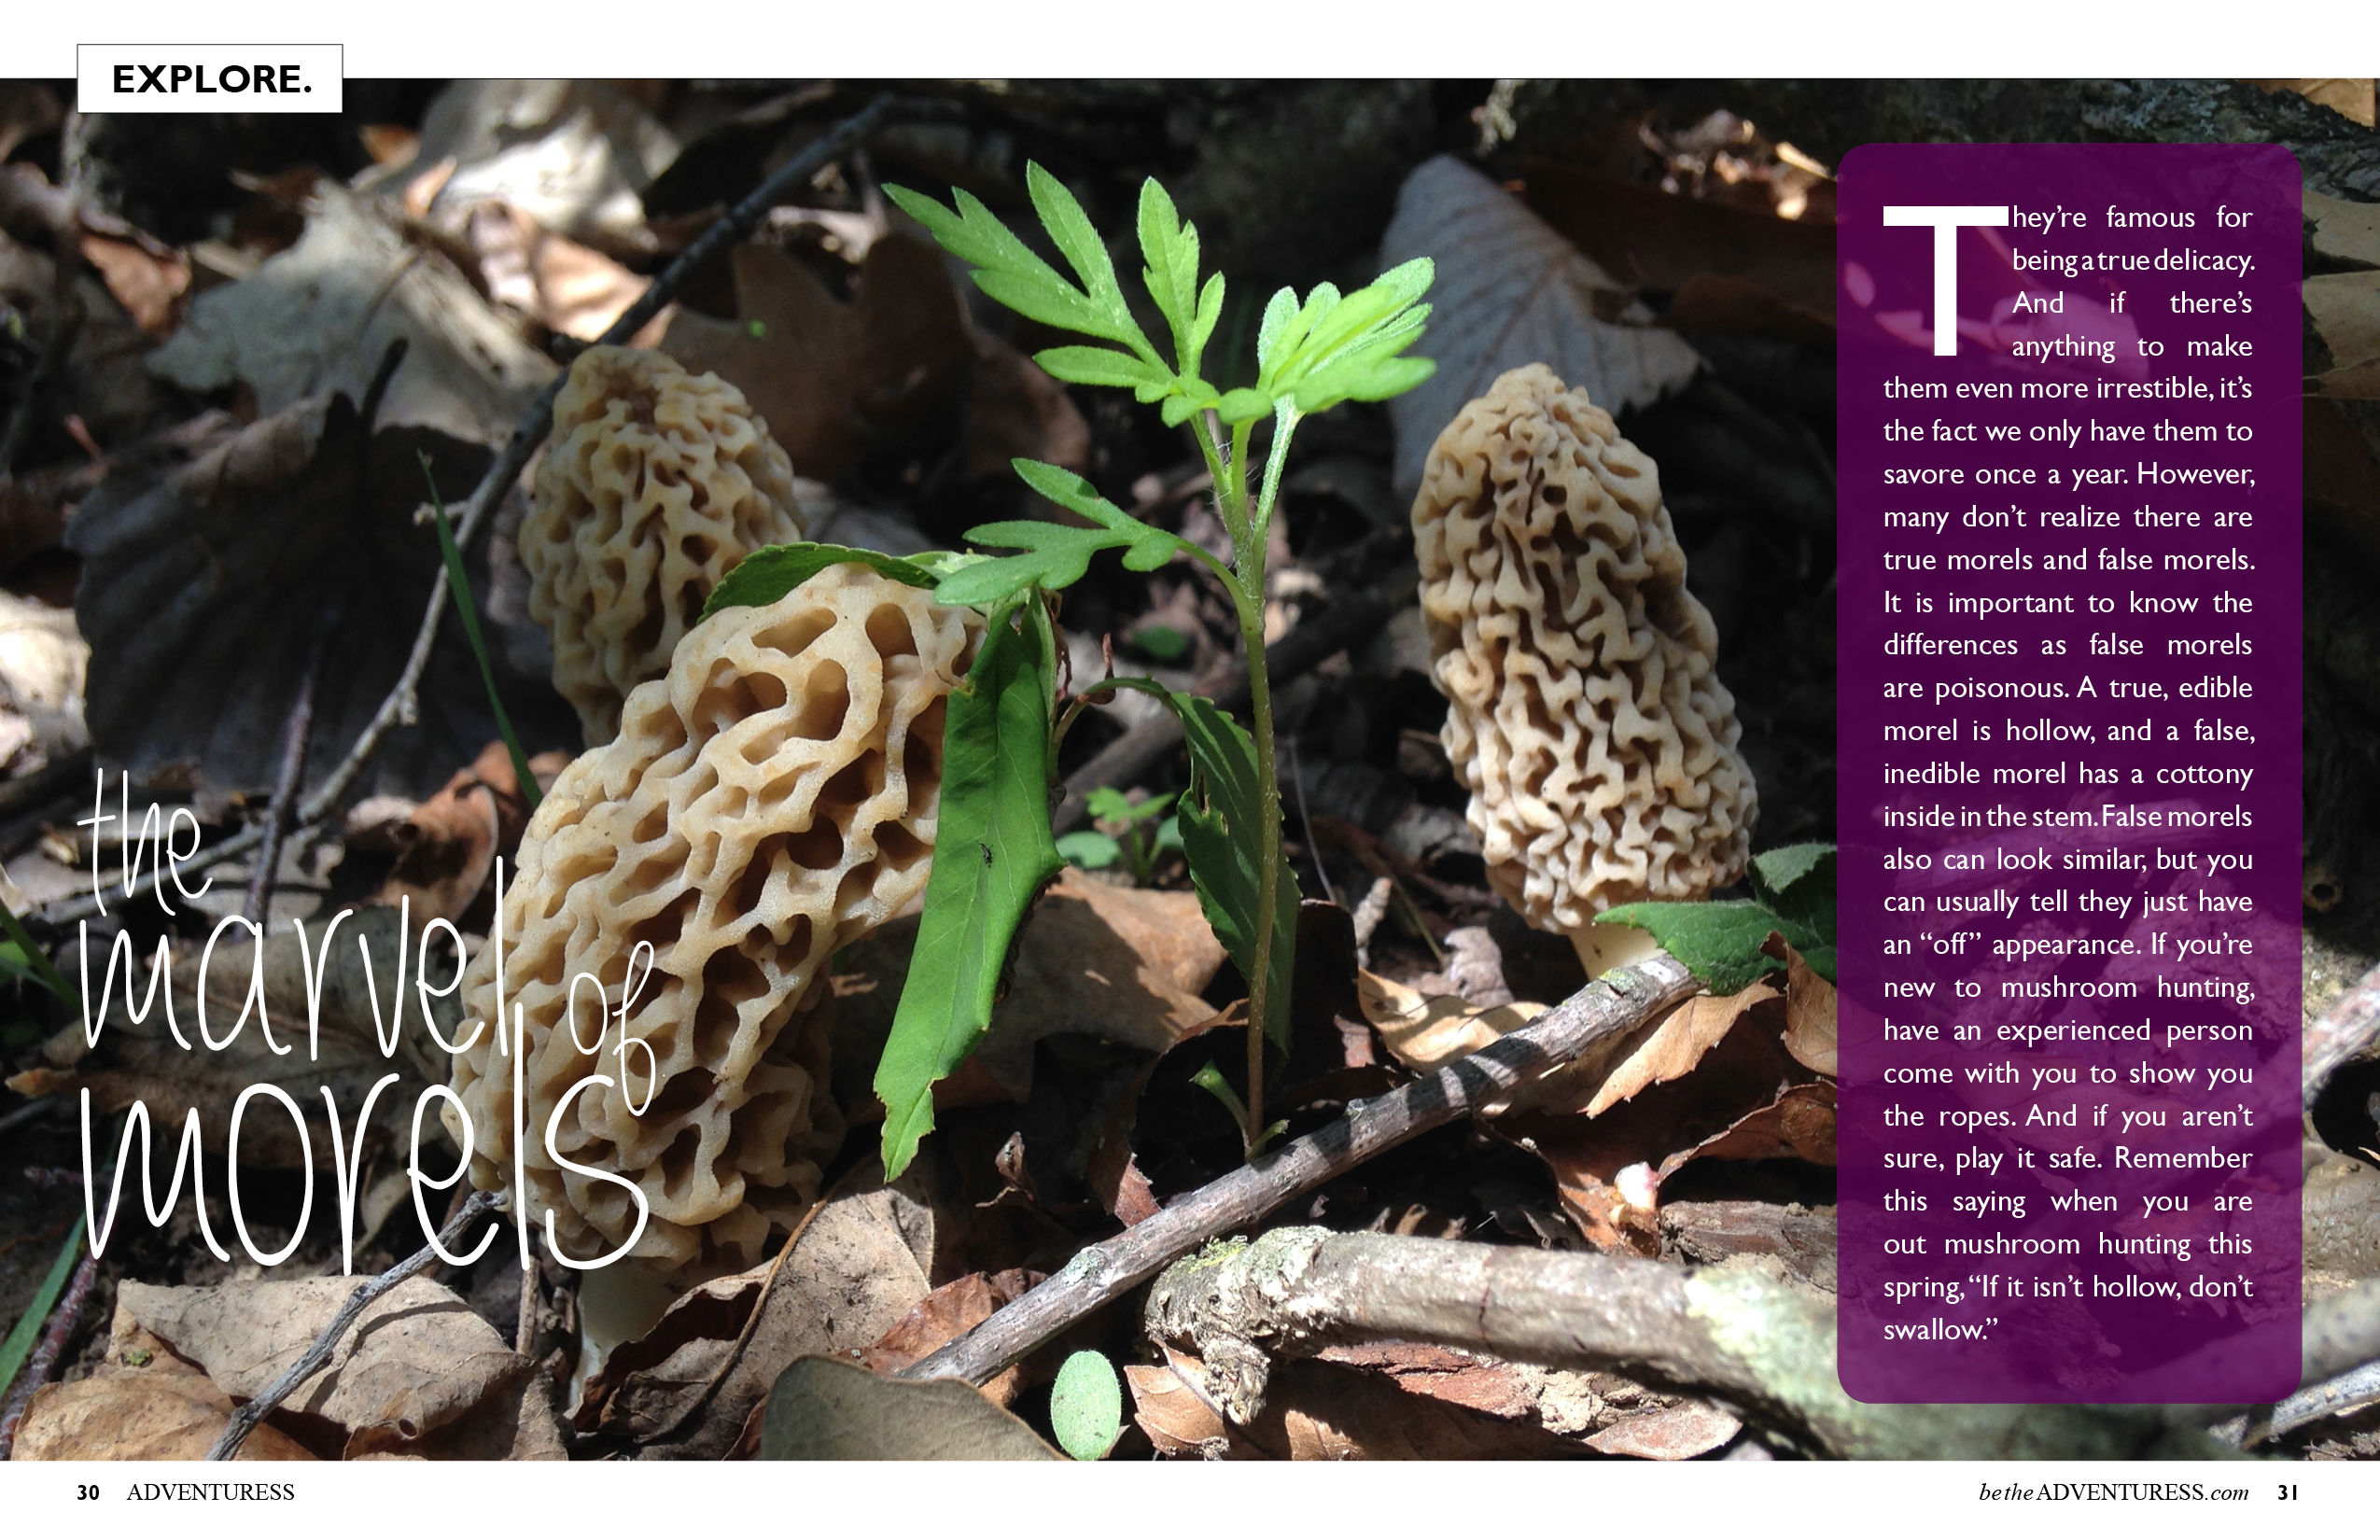 The Marvel of Morels